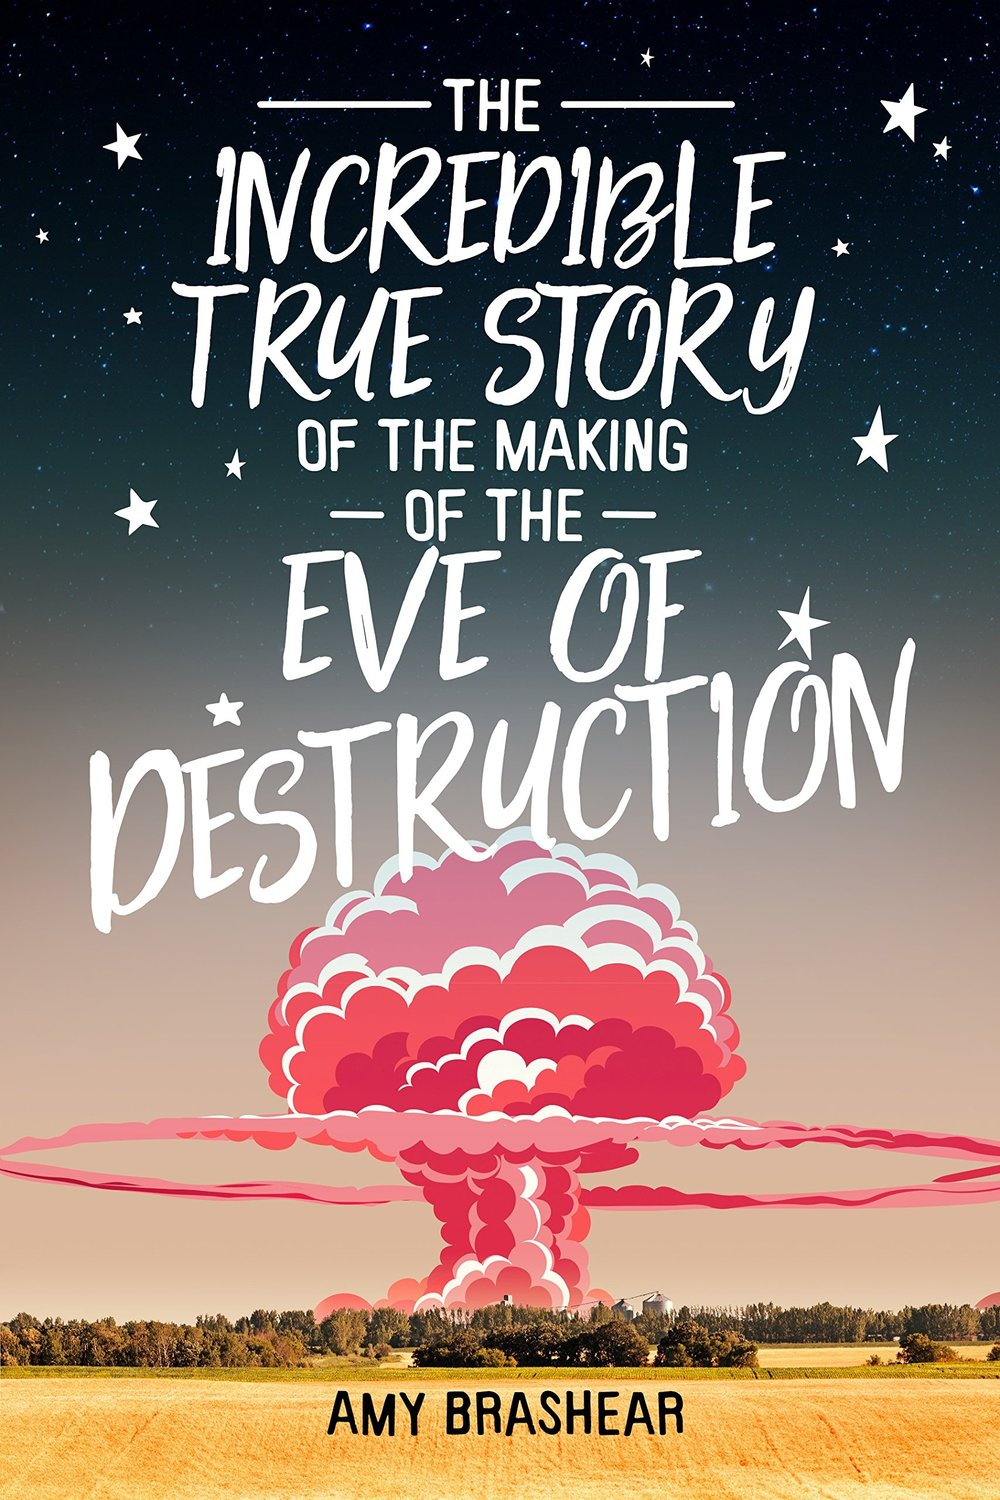 The Incredible True Story of the Making of the Eve of Destruction pic.jpg